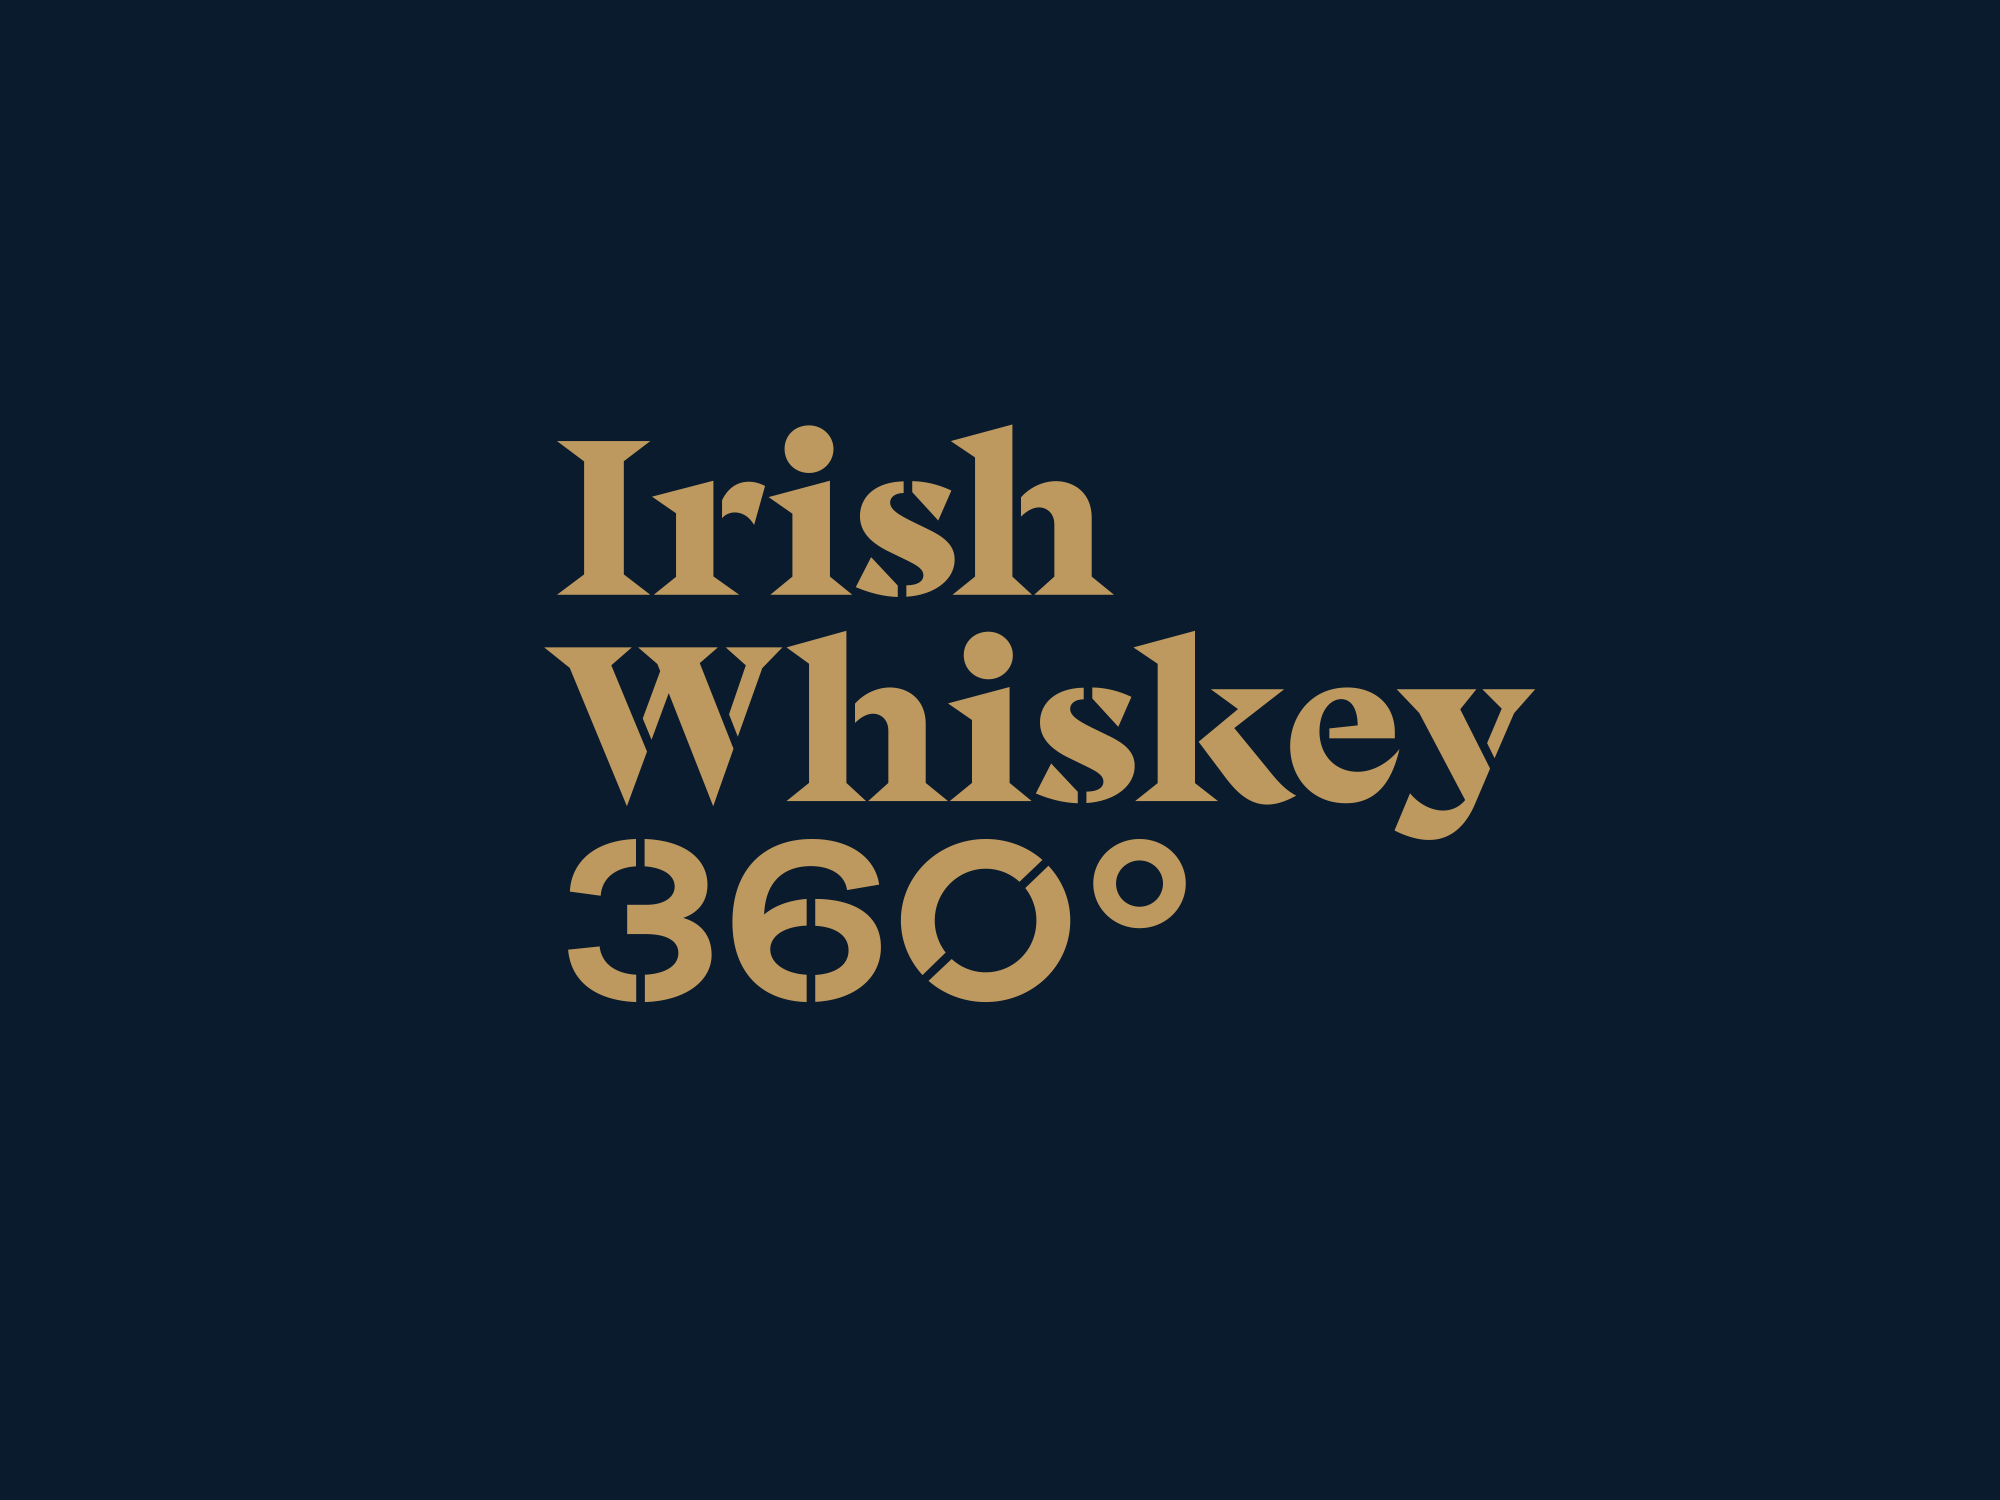 Cover image: Irish Whiskey 360° Brand Identity